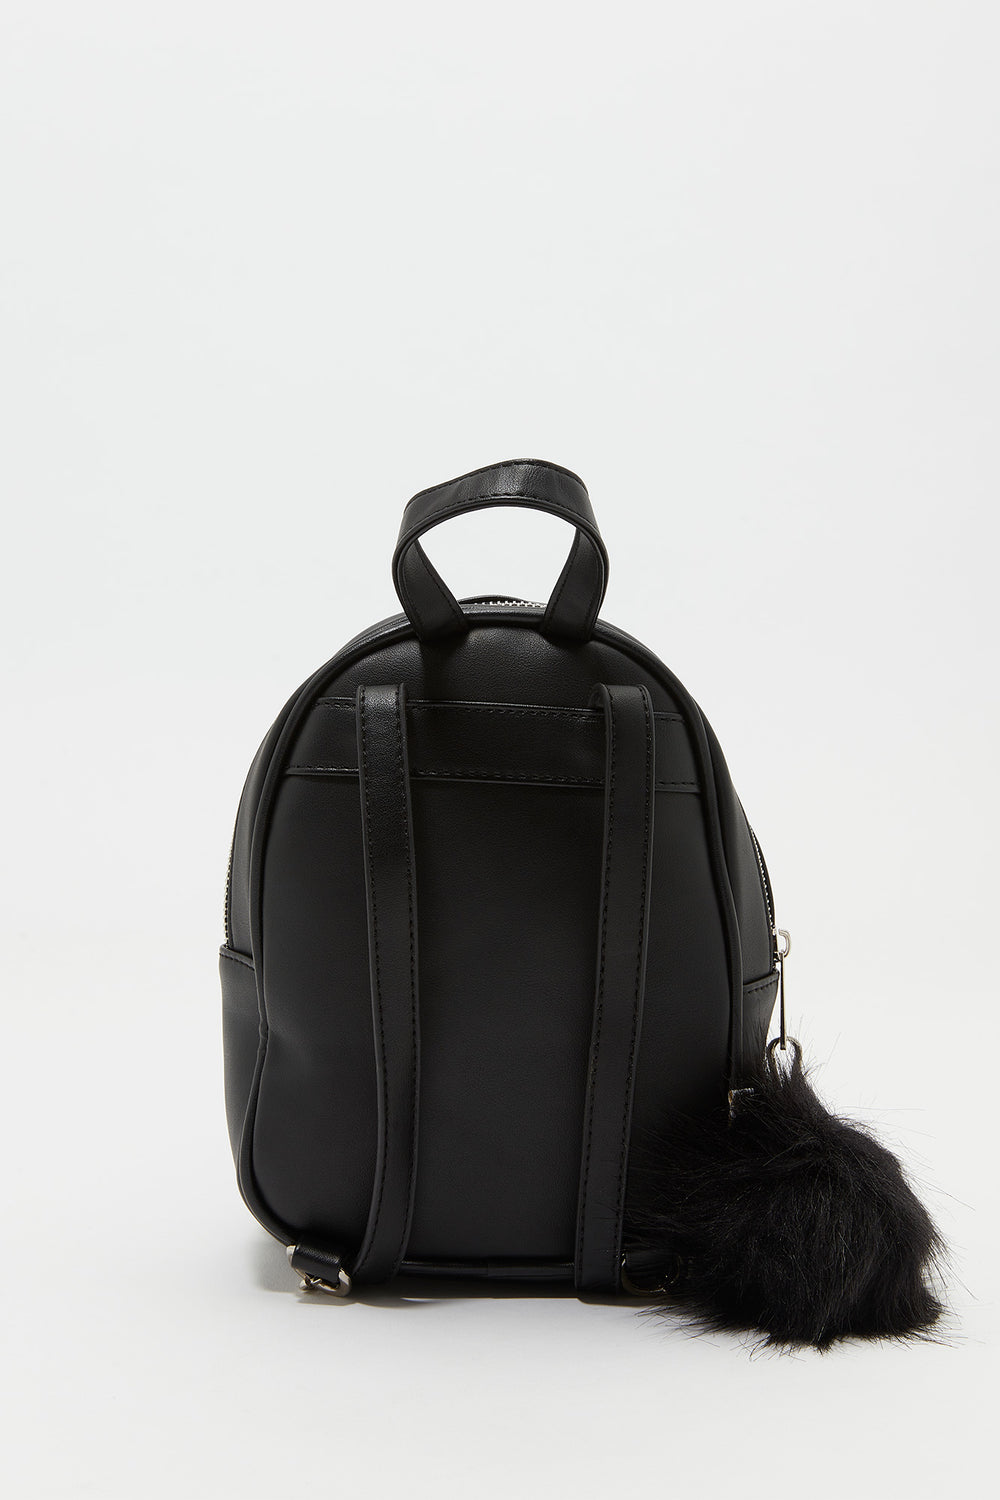 Furry Pom Pom Backpack Black